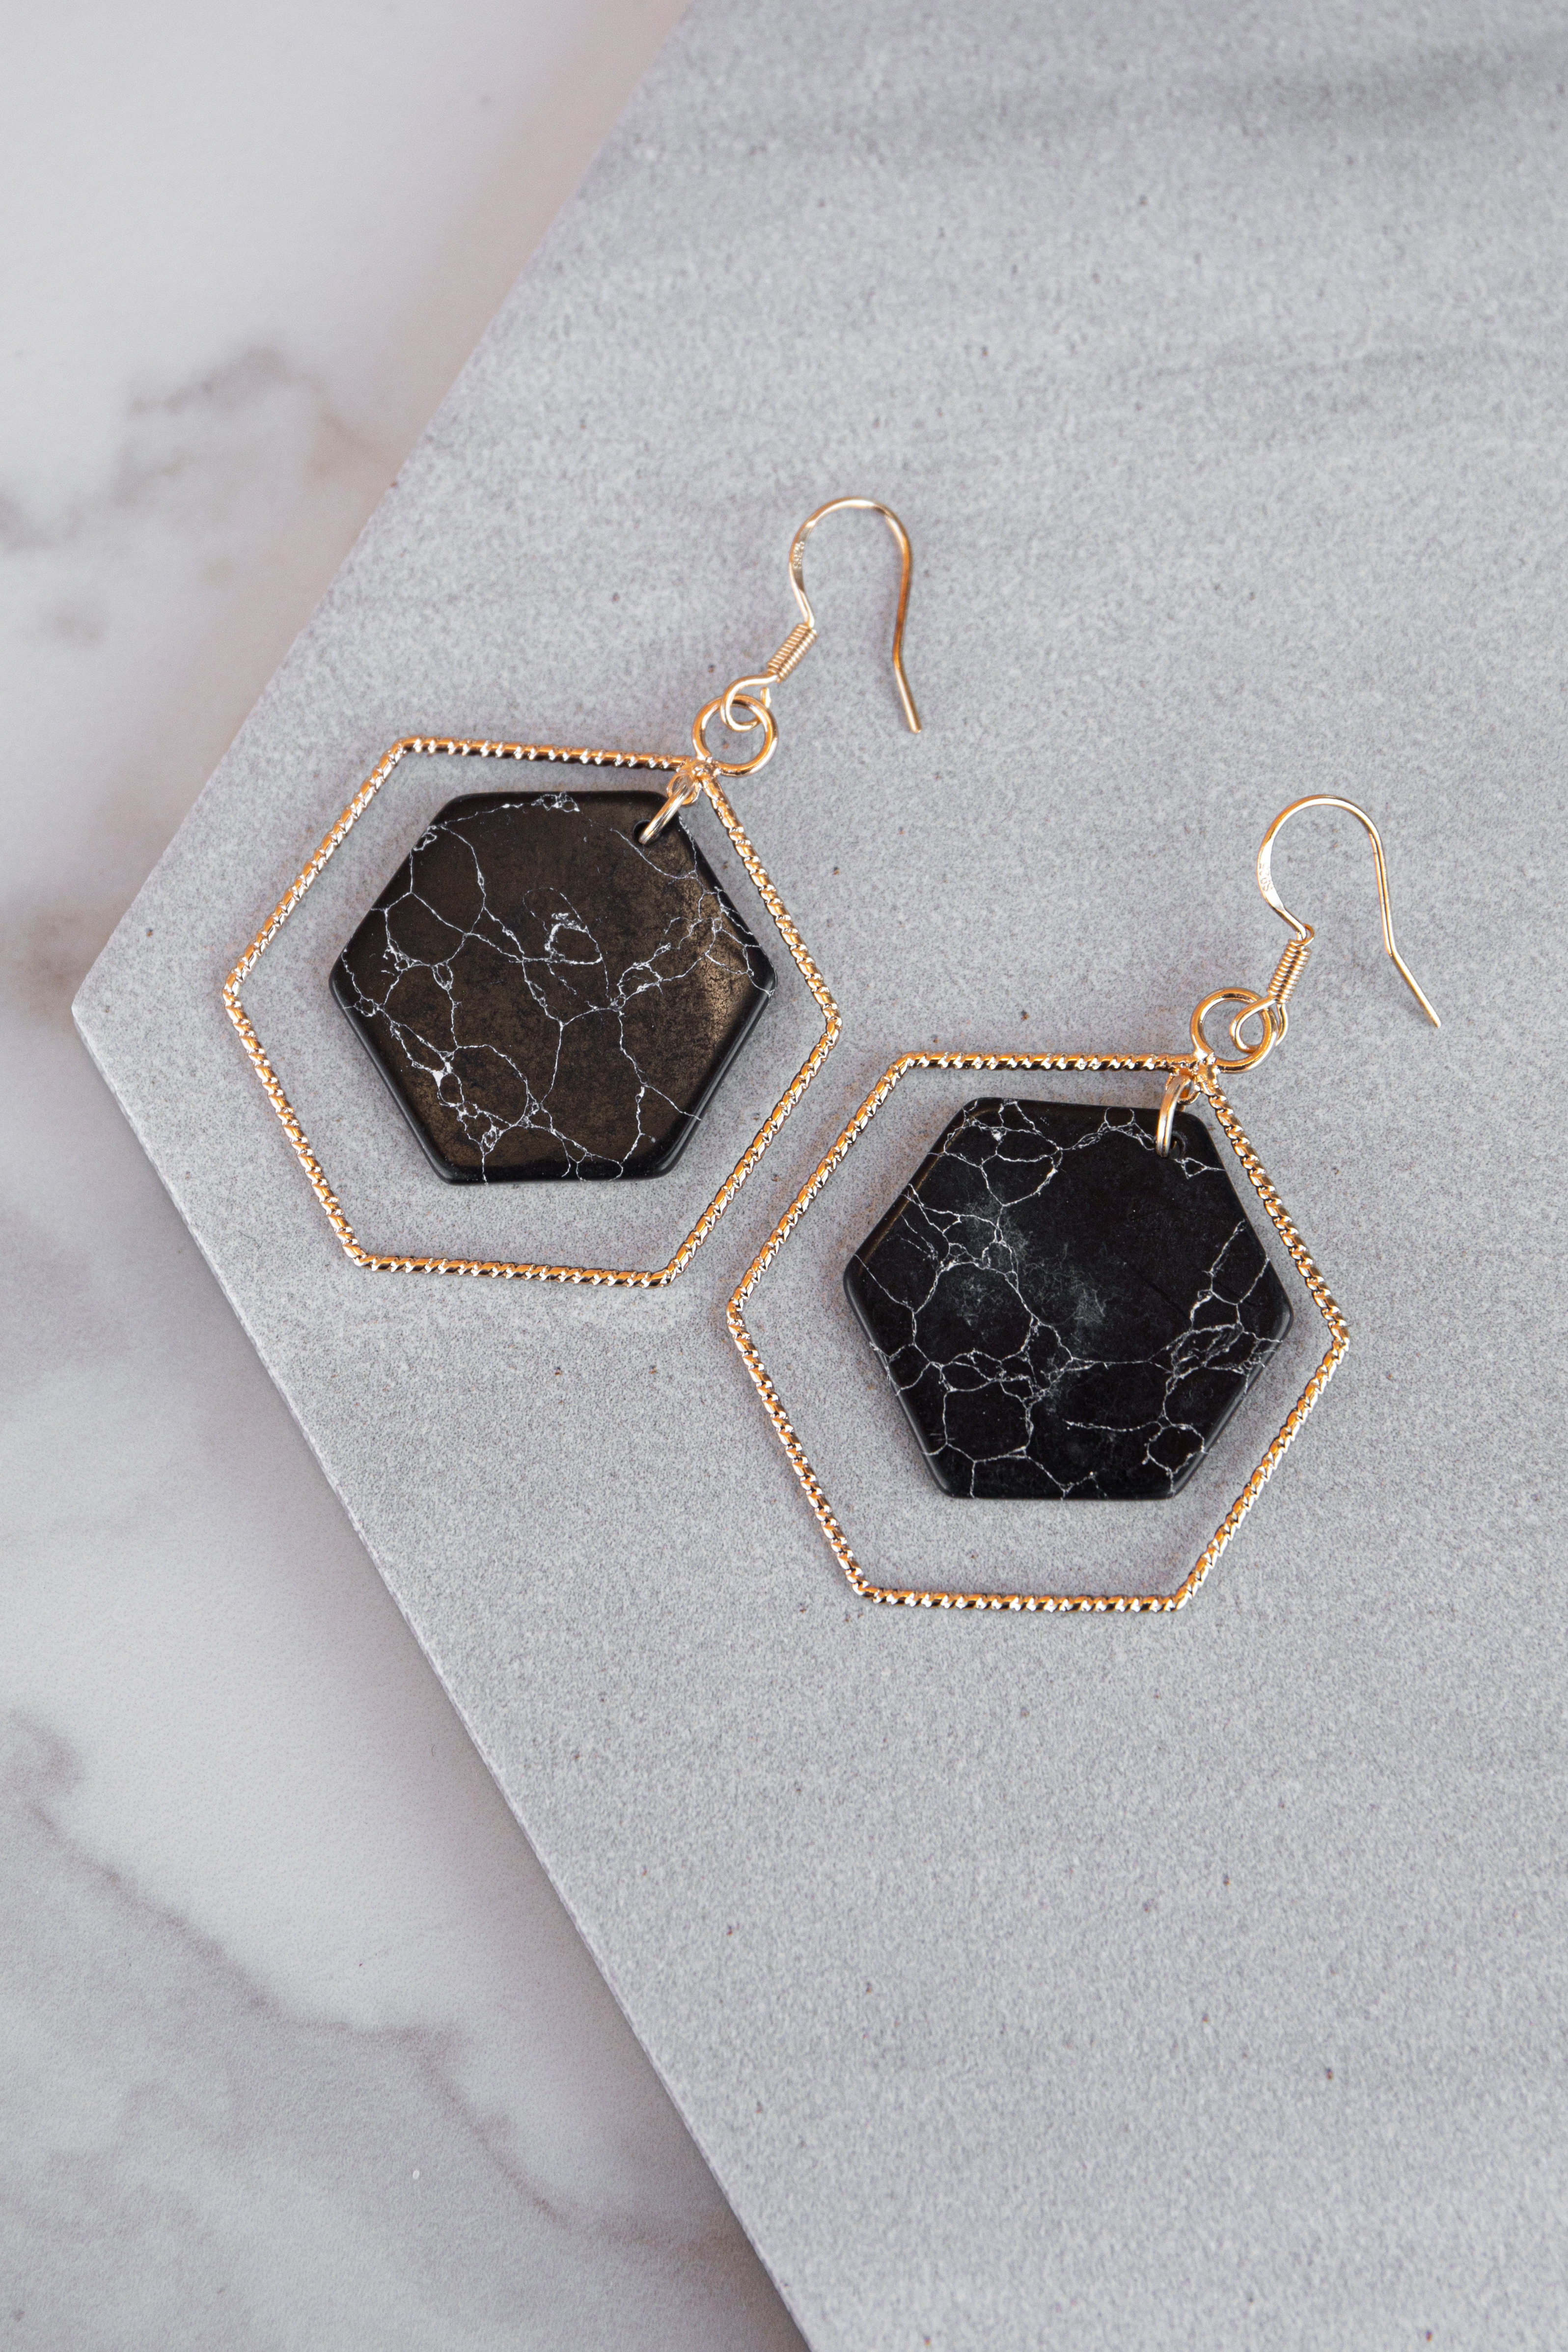 Gold Hexagon Shaped Dangle Earrings with Black Stone Details